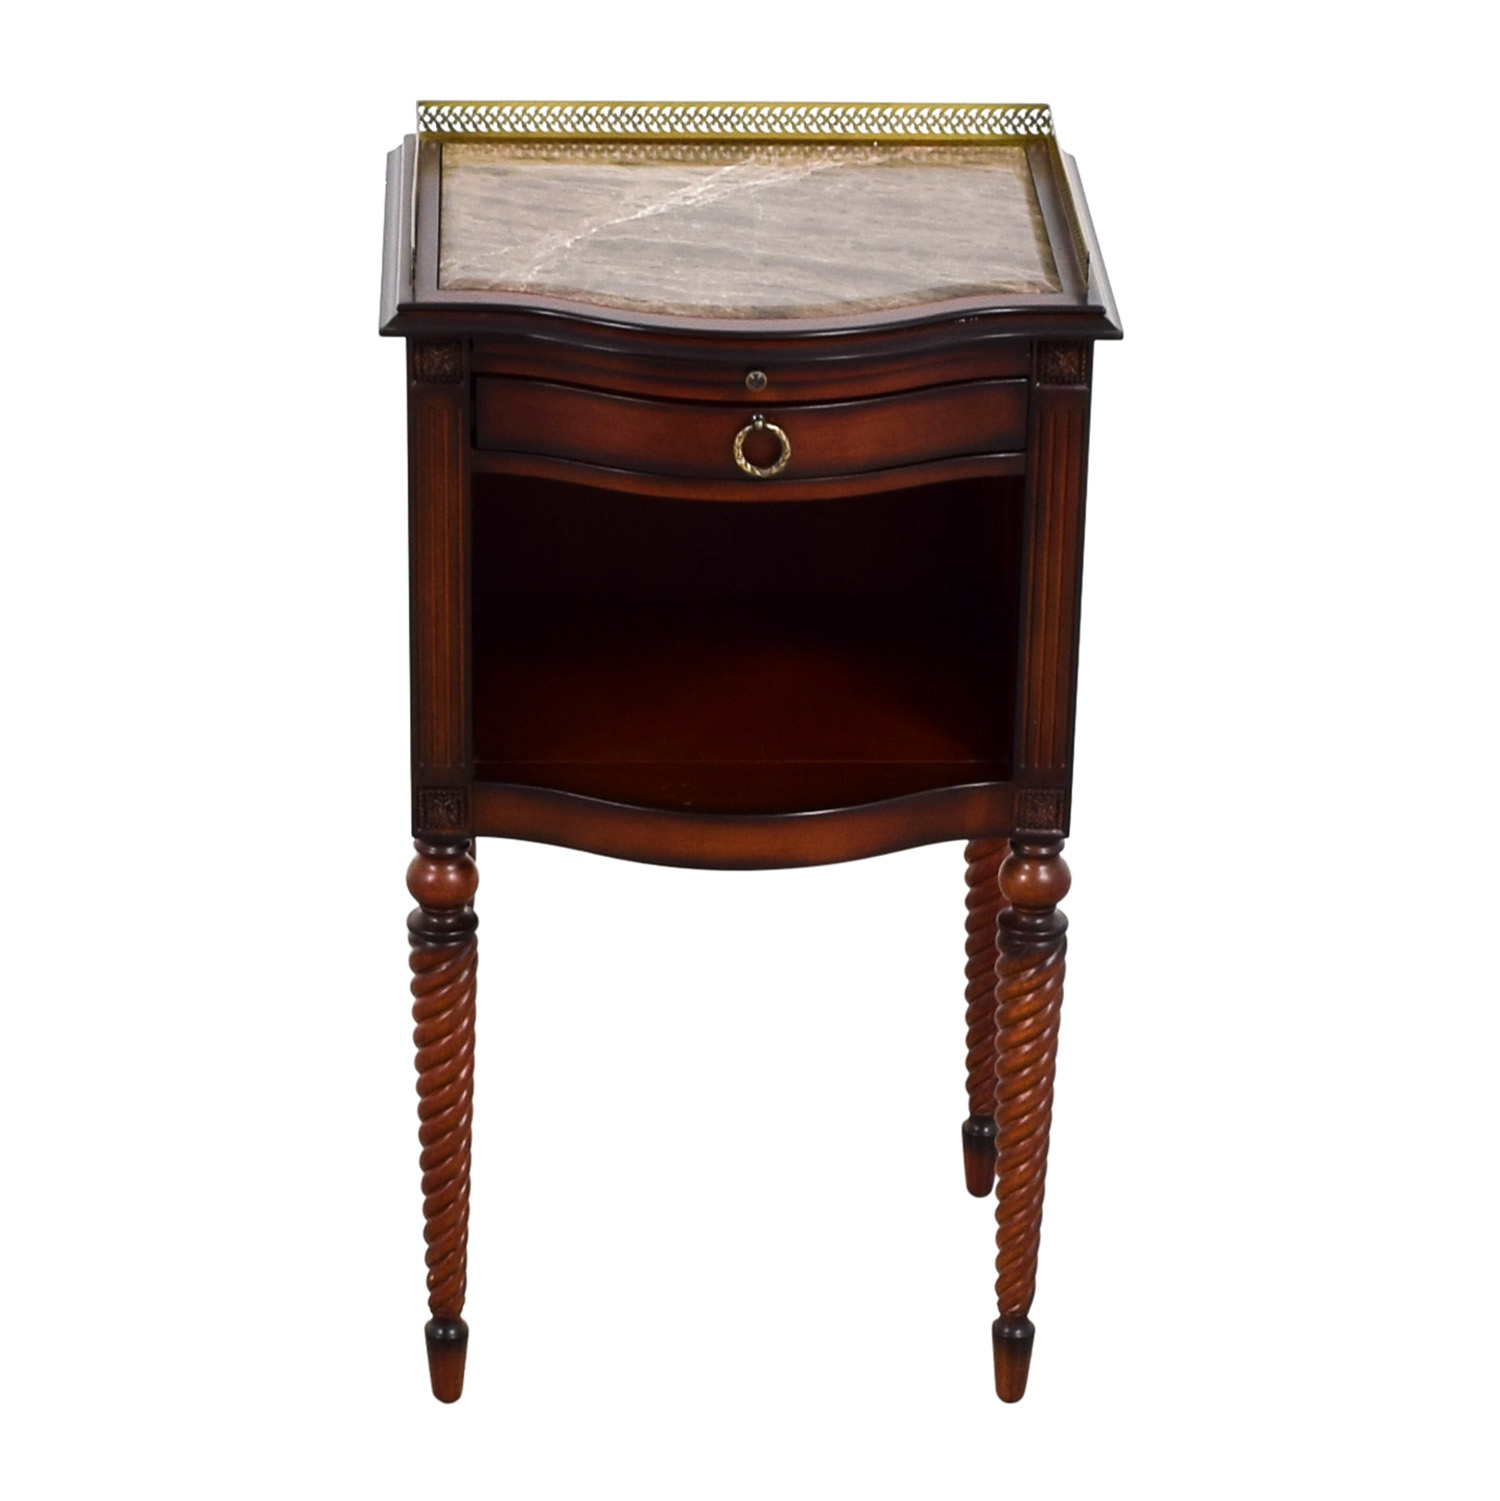 off bombay marble top with gold trim wood corner accent table tables dorm decor ideas modern glass end half patio umbrella farmhouse dining big lots lamps vinyl lace tablecloth